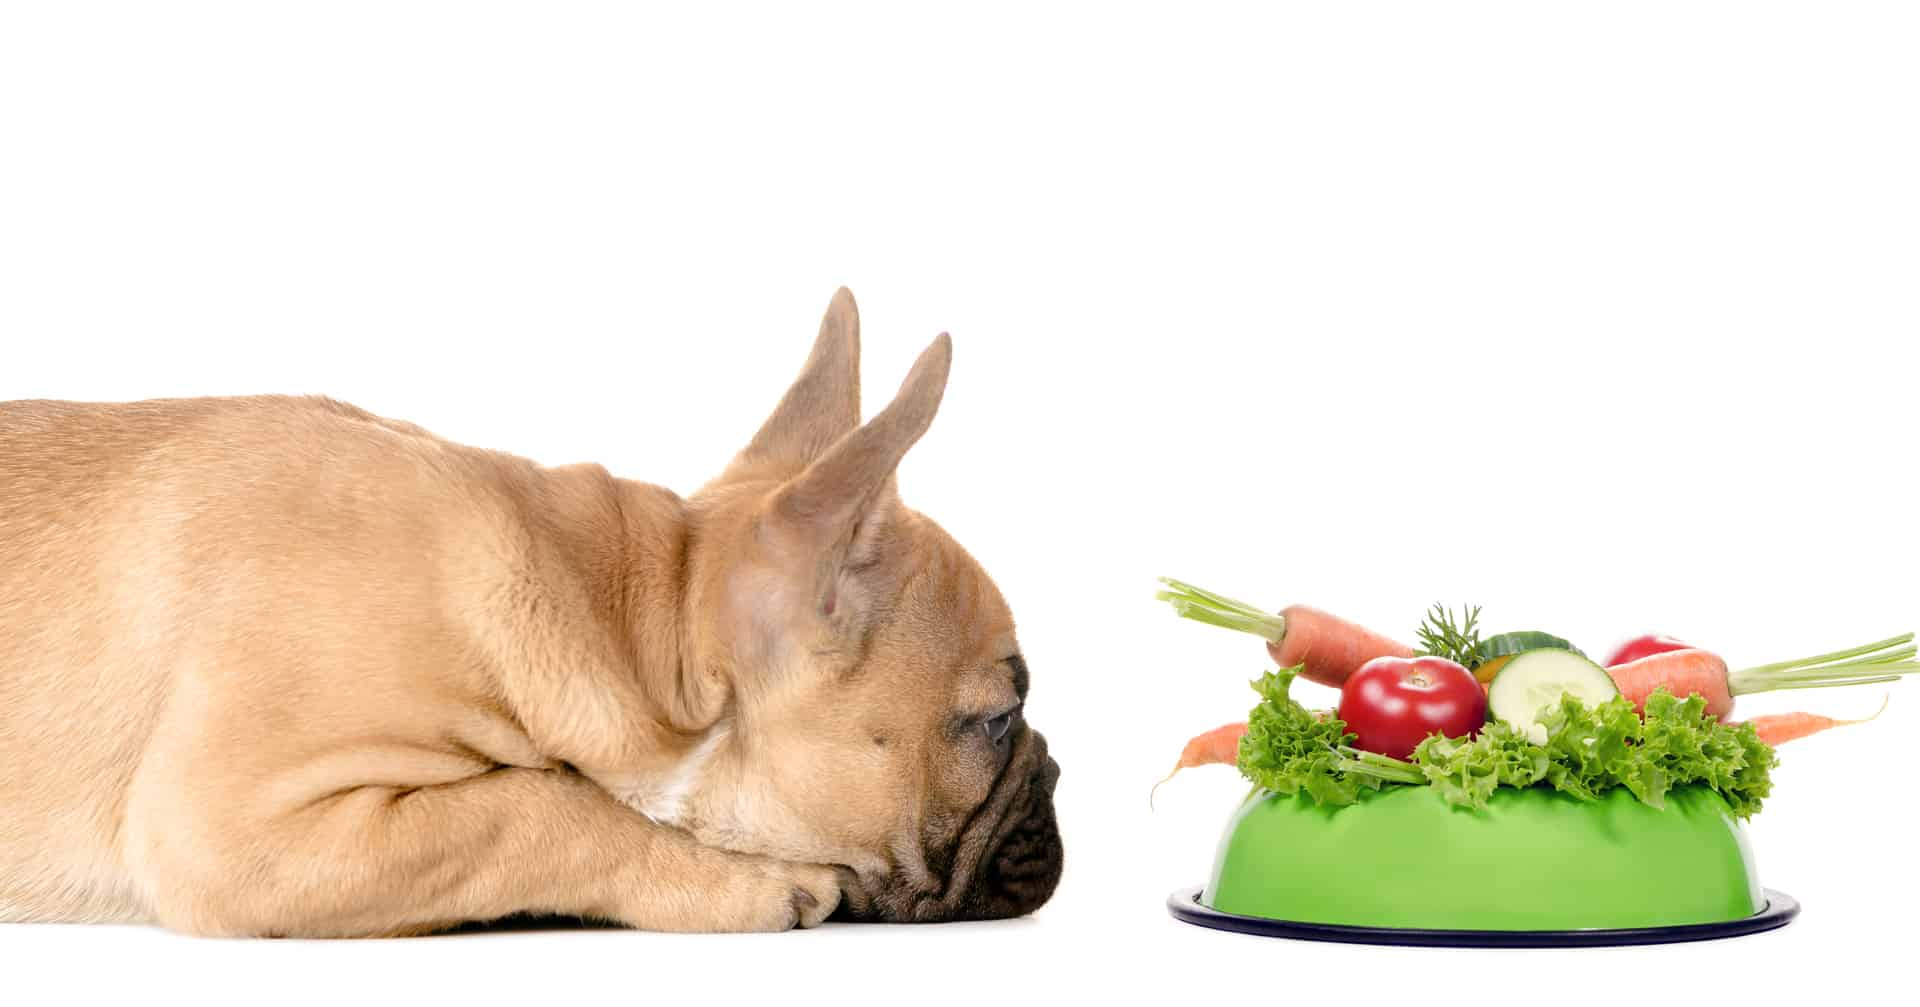 Are Freshly-Cooked Meals the Future of a Healthy Dog's Diet? | Four Long legs